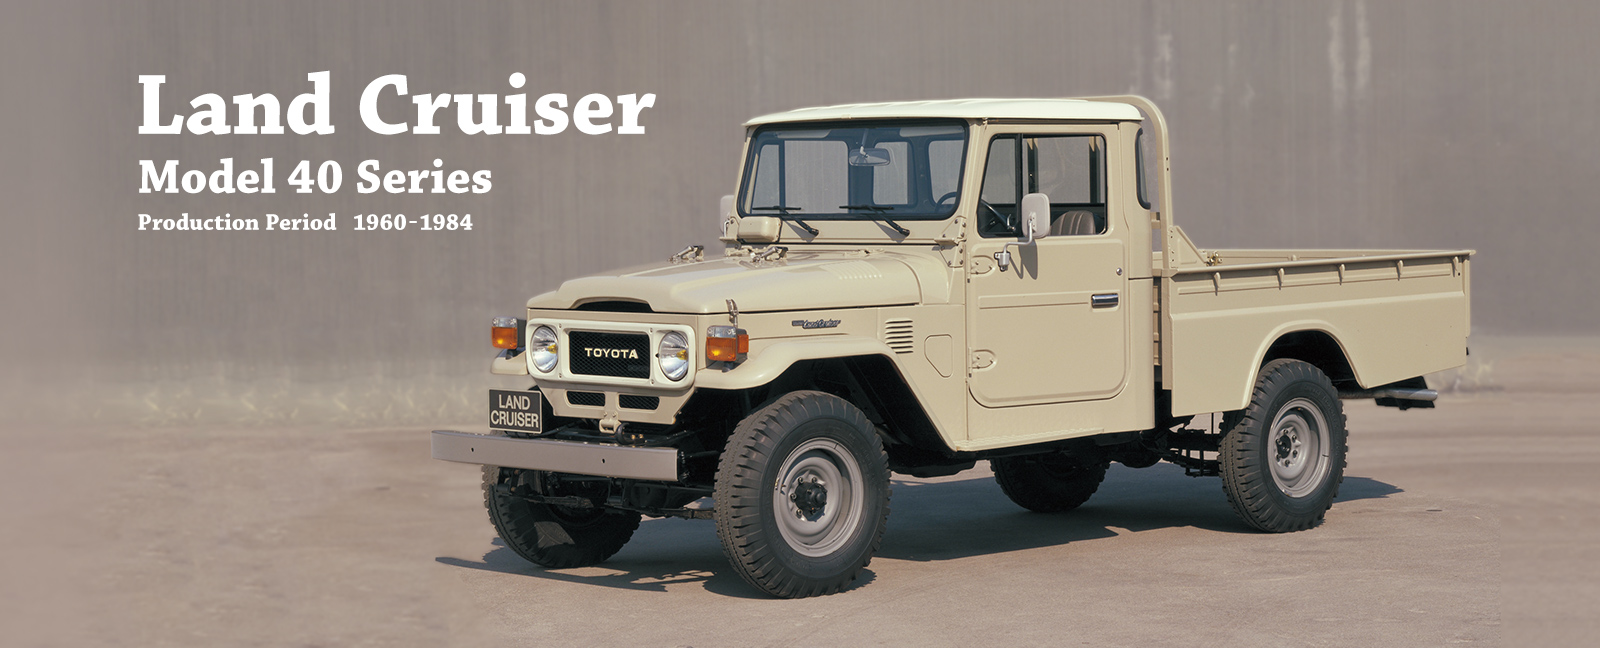 Toyota Global Site Land Cruiser Model 40 Series 01